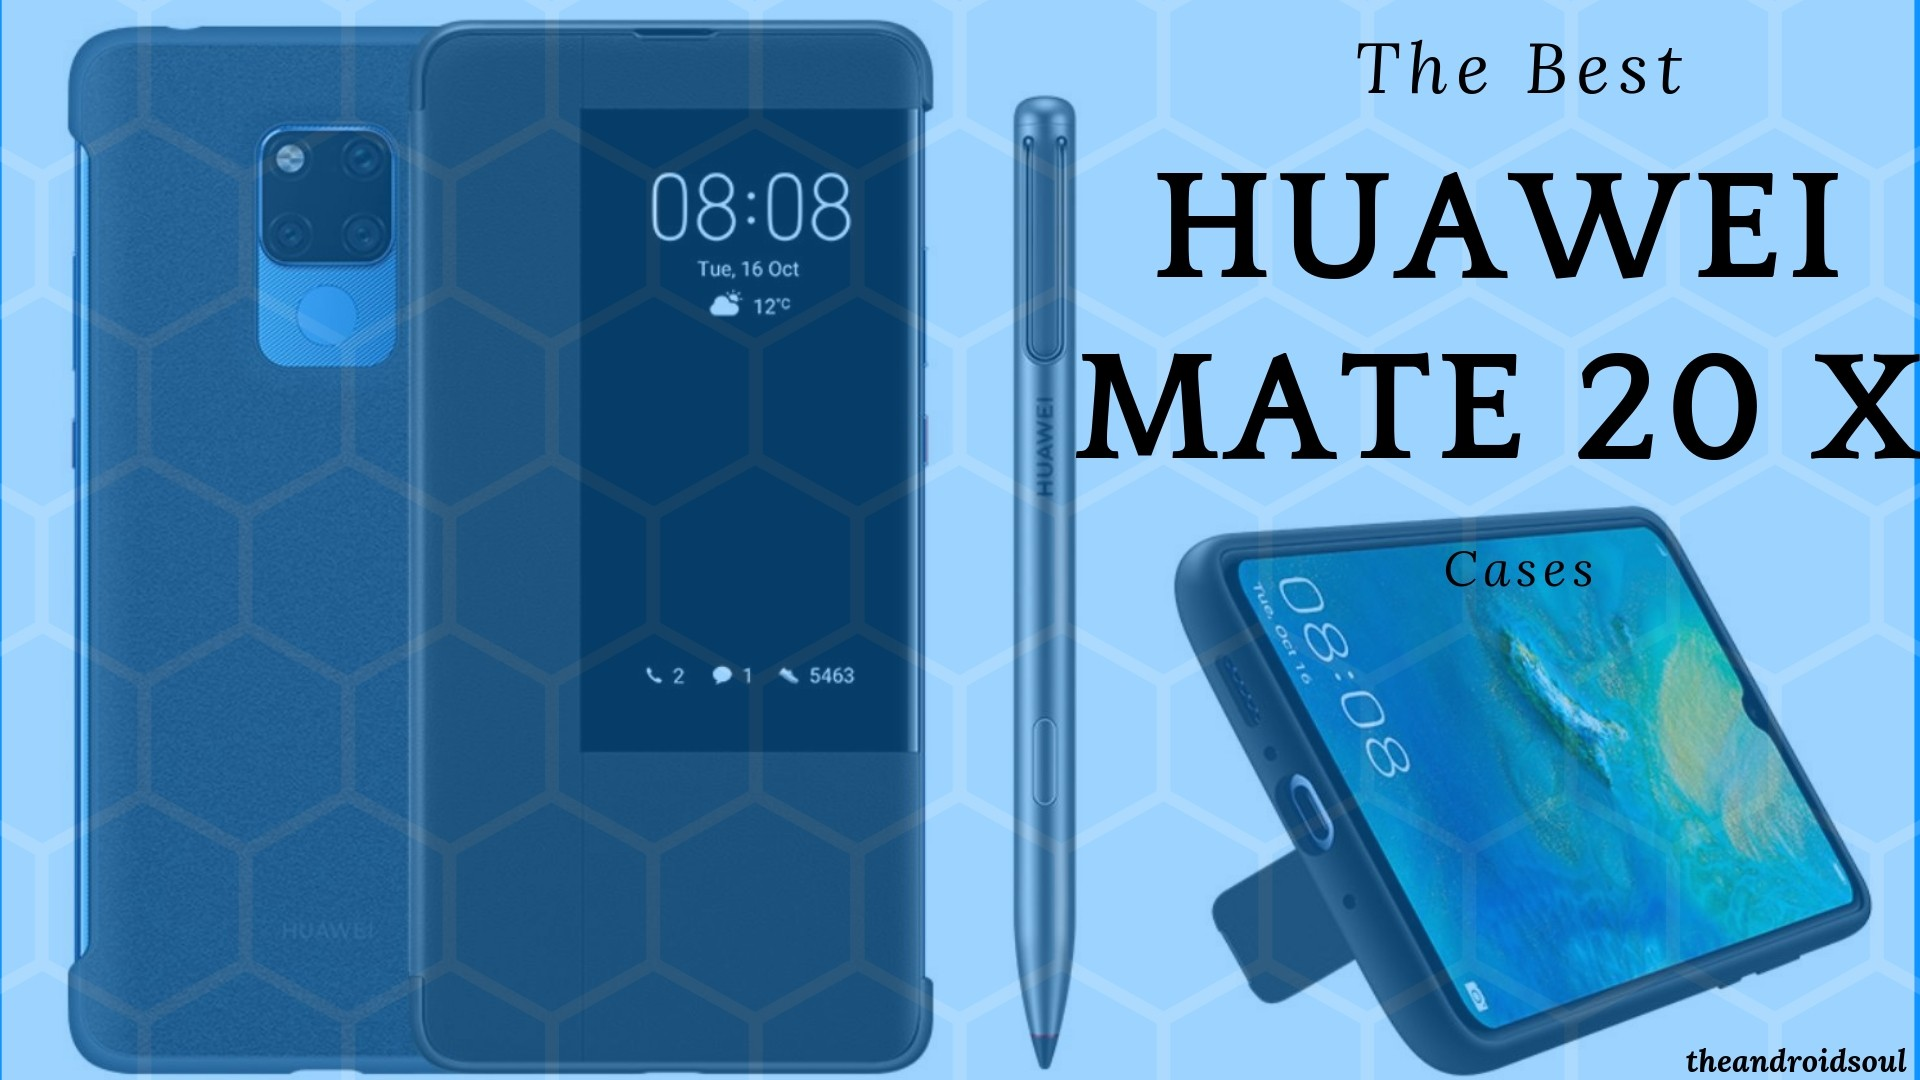 The Best Huawei Mate 20 X Cases